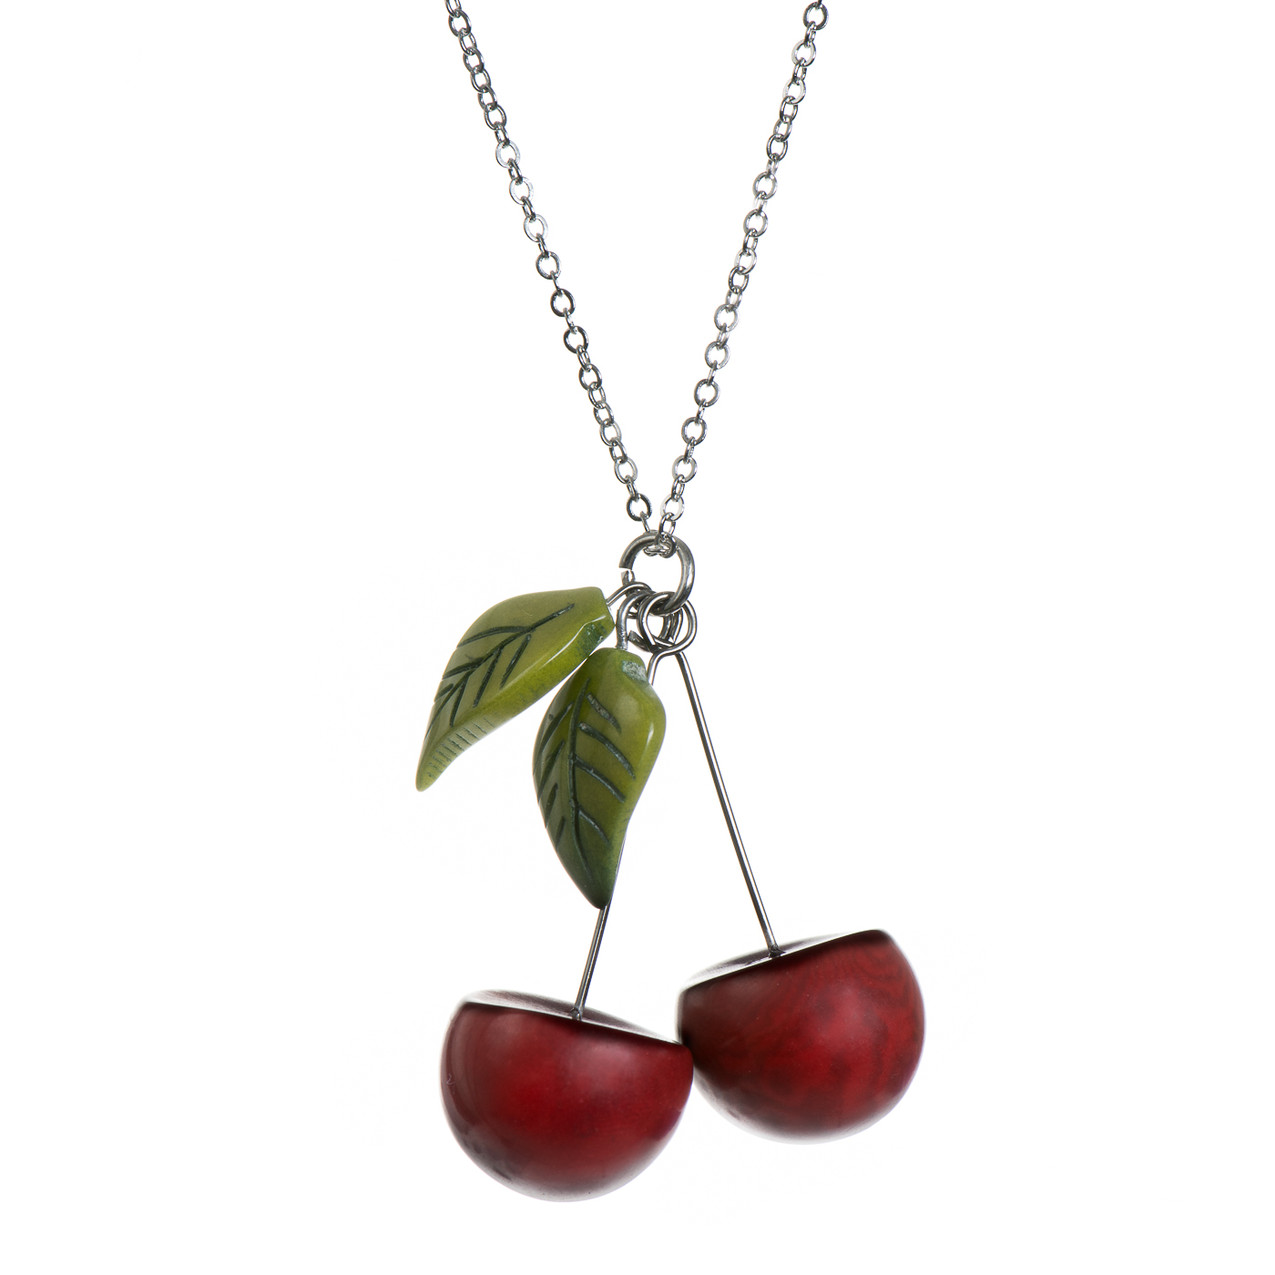 Tagua Cherry Necklace